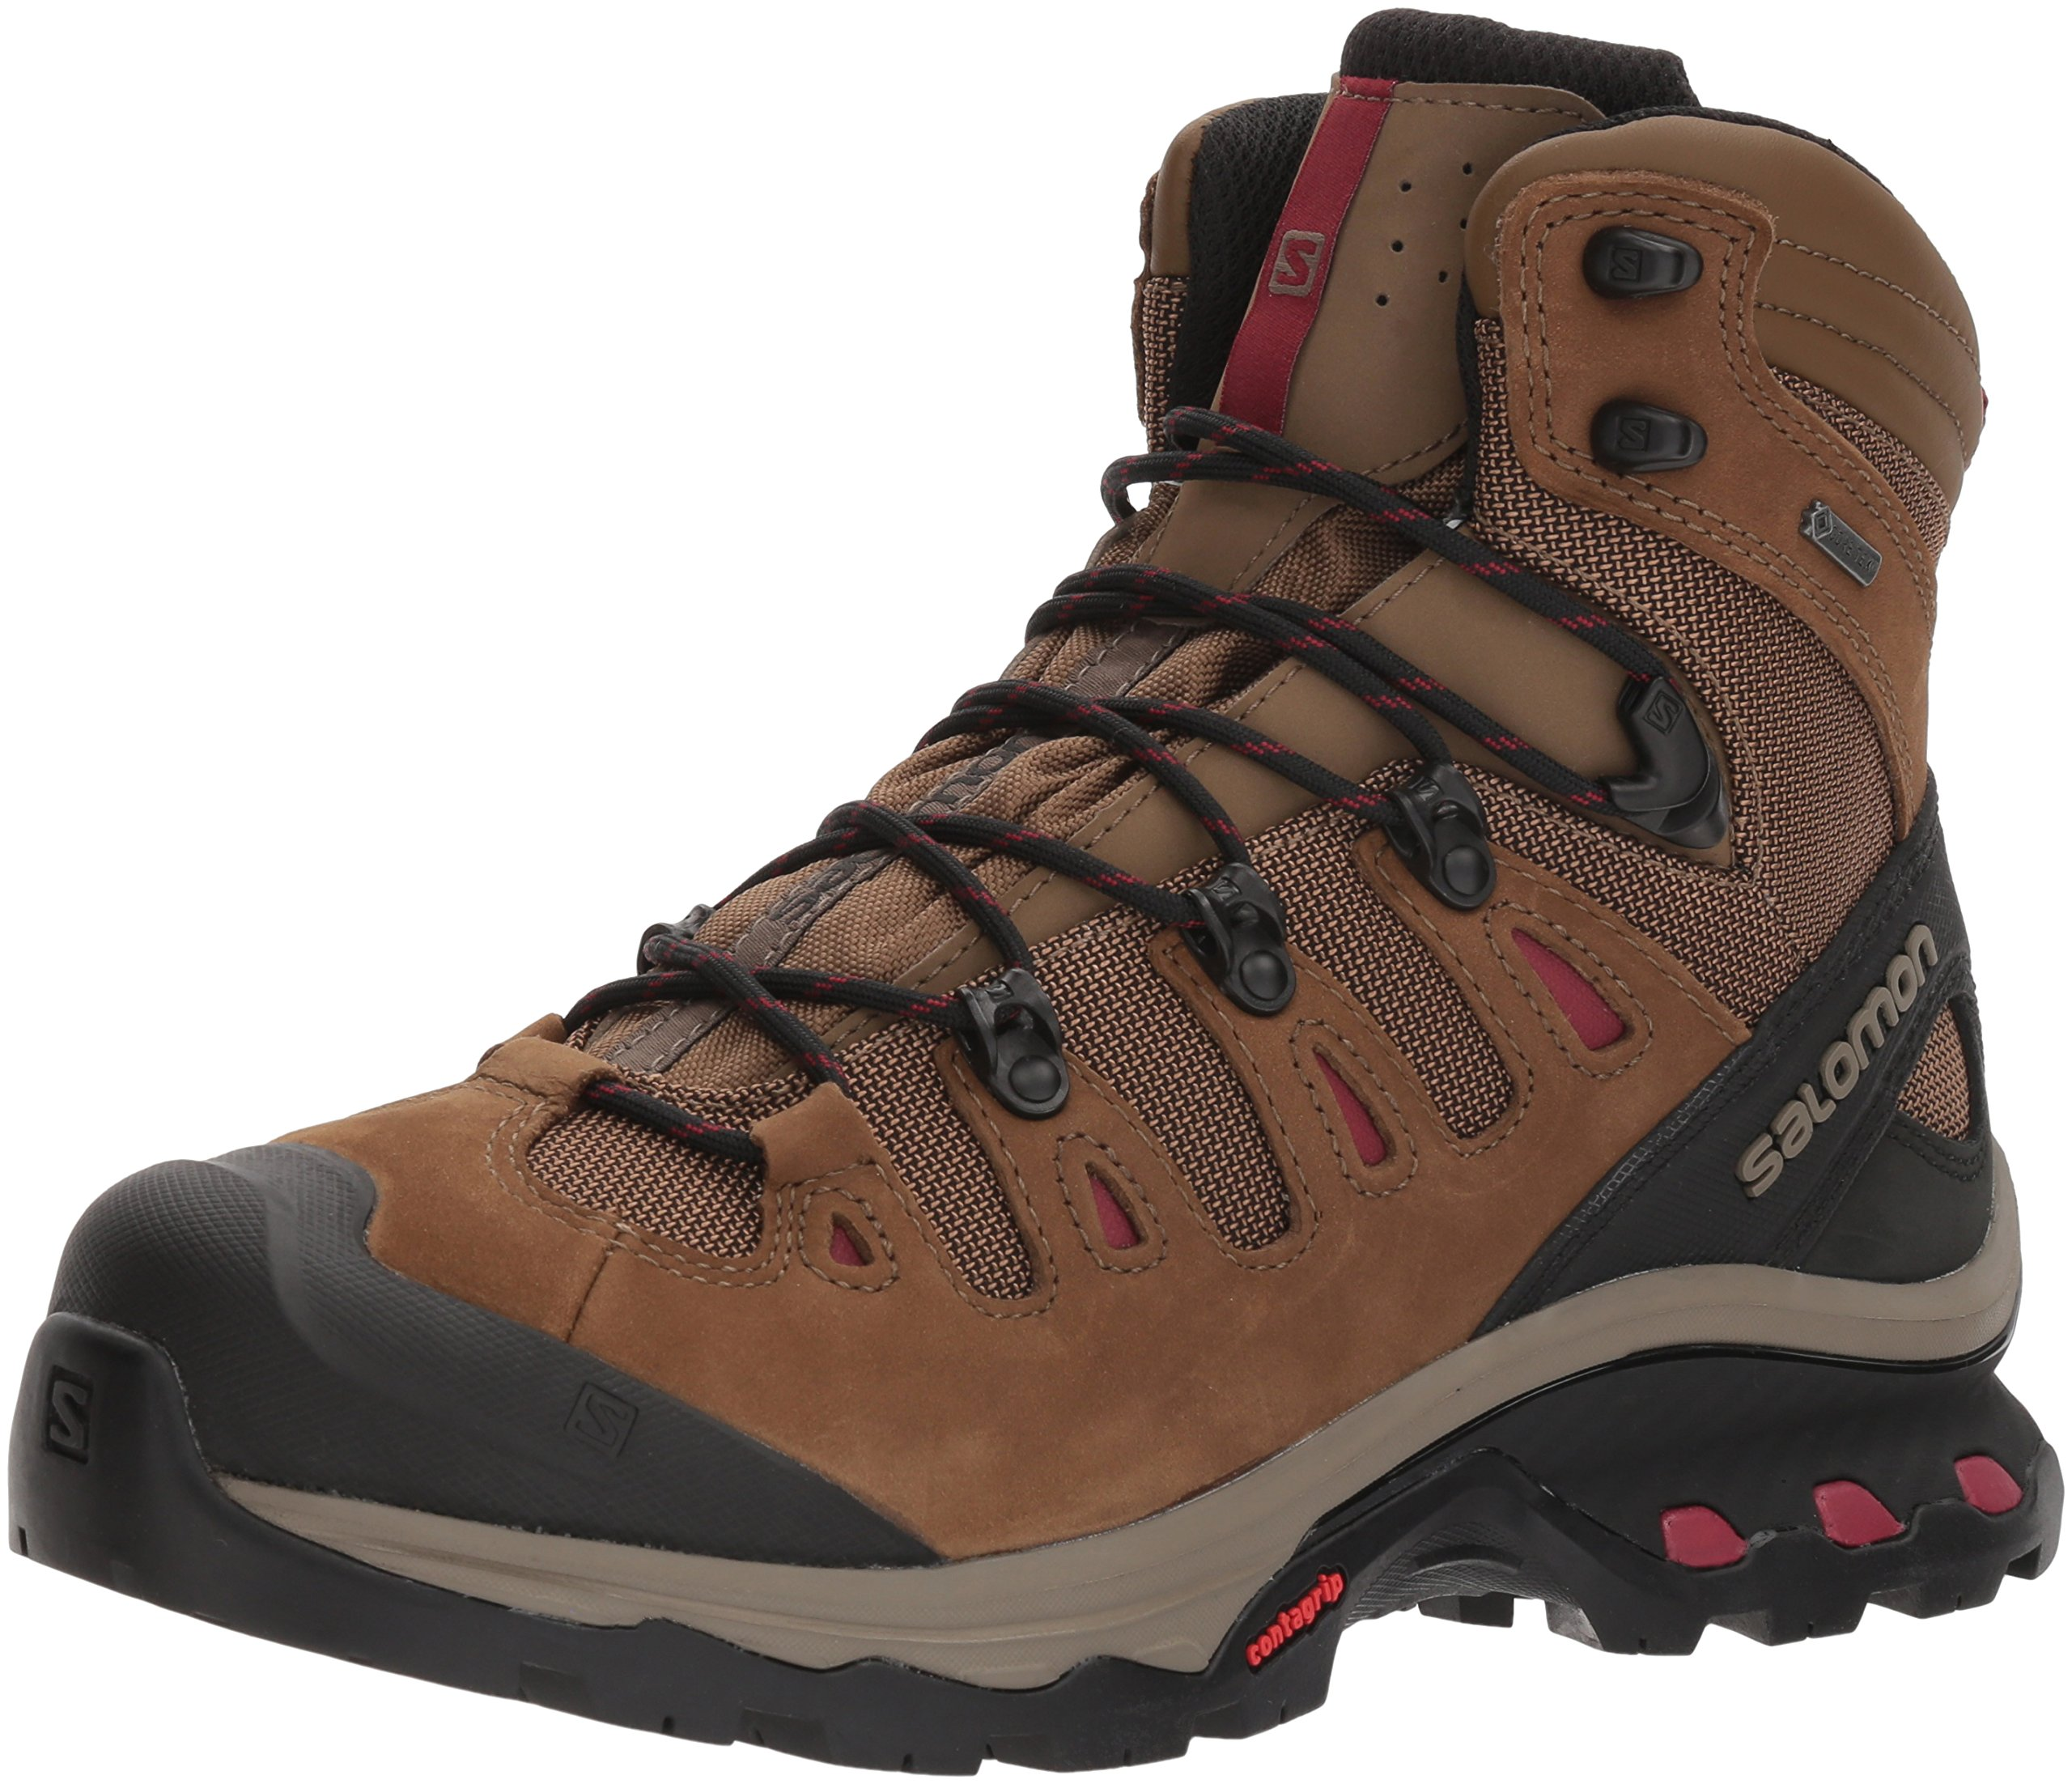 Salomon Women's Quest 4D 3 Gtx W Backpacking Boots, Teak, 6 B US